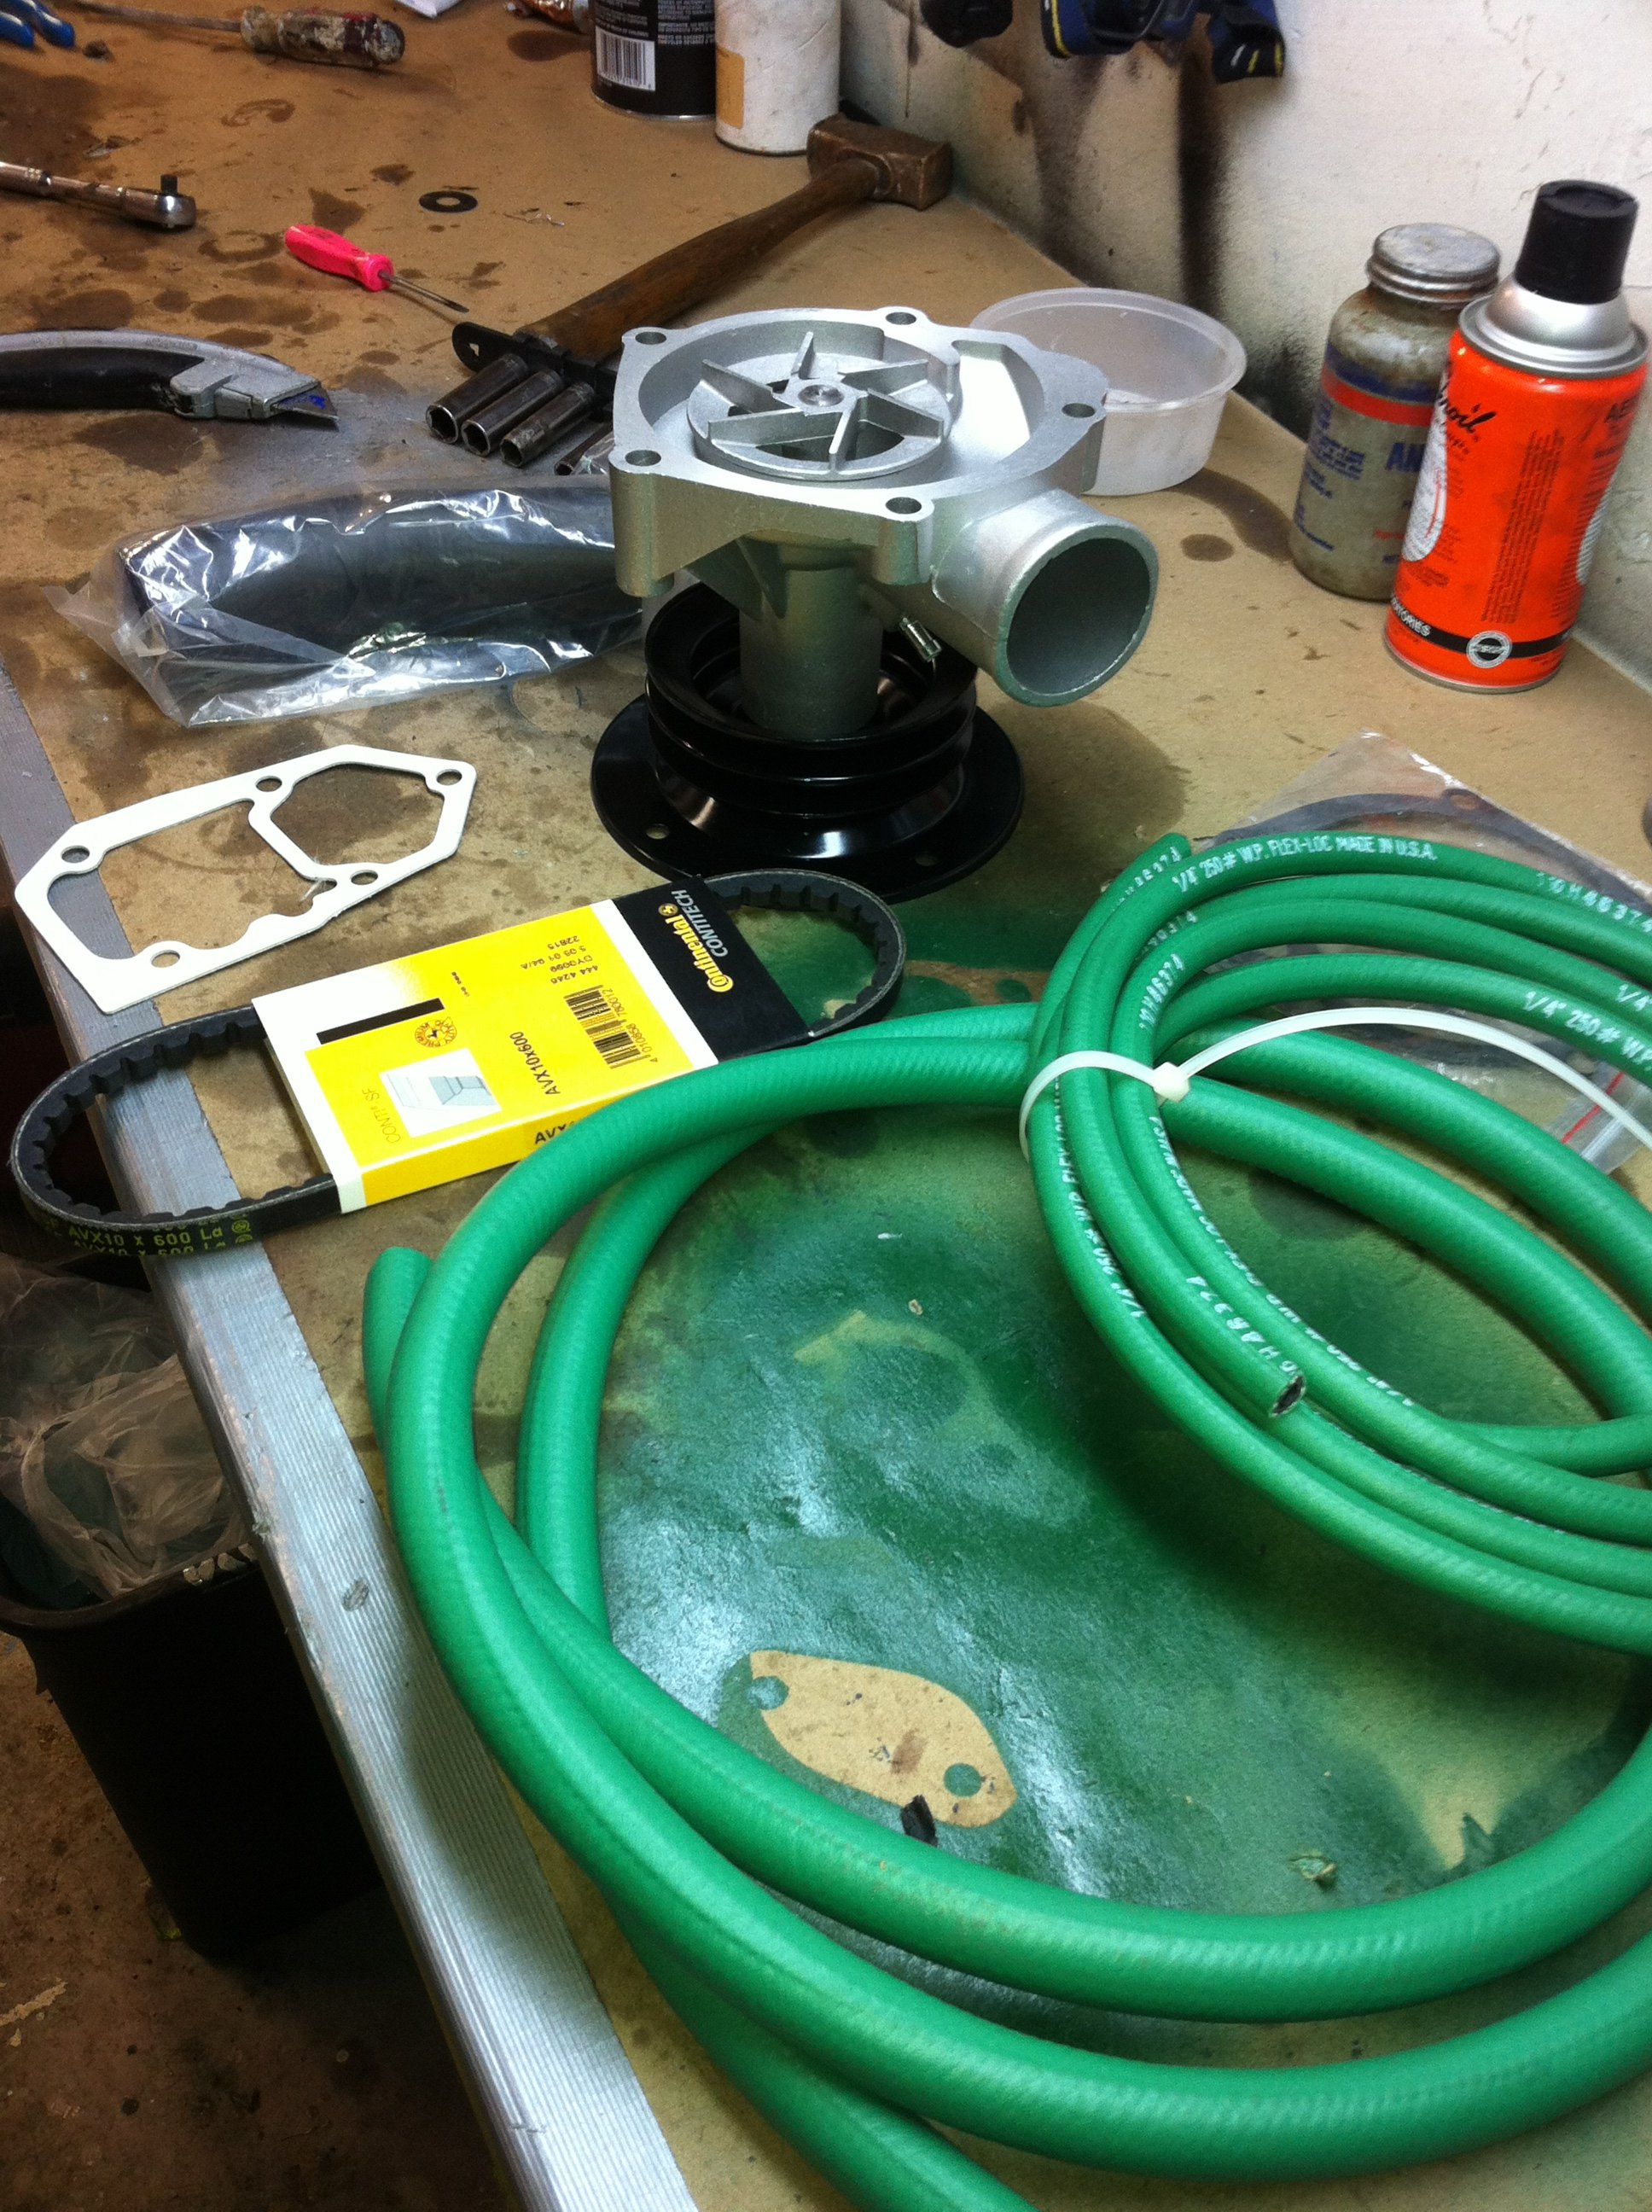 New water pump and green hydraulic hose arrive